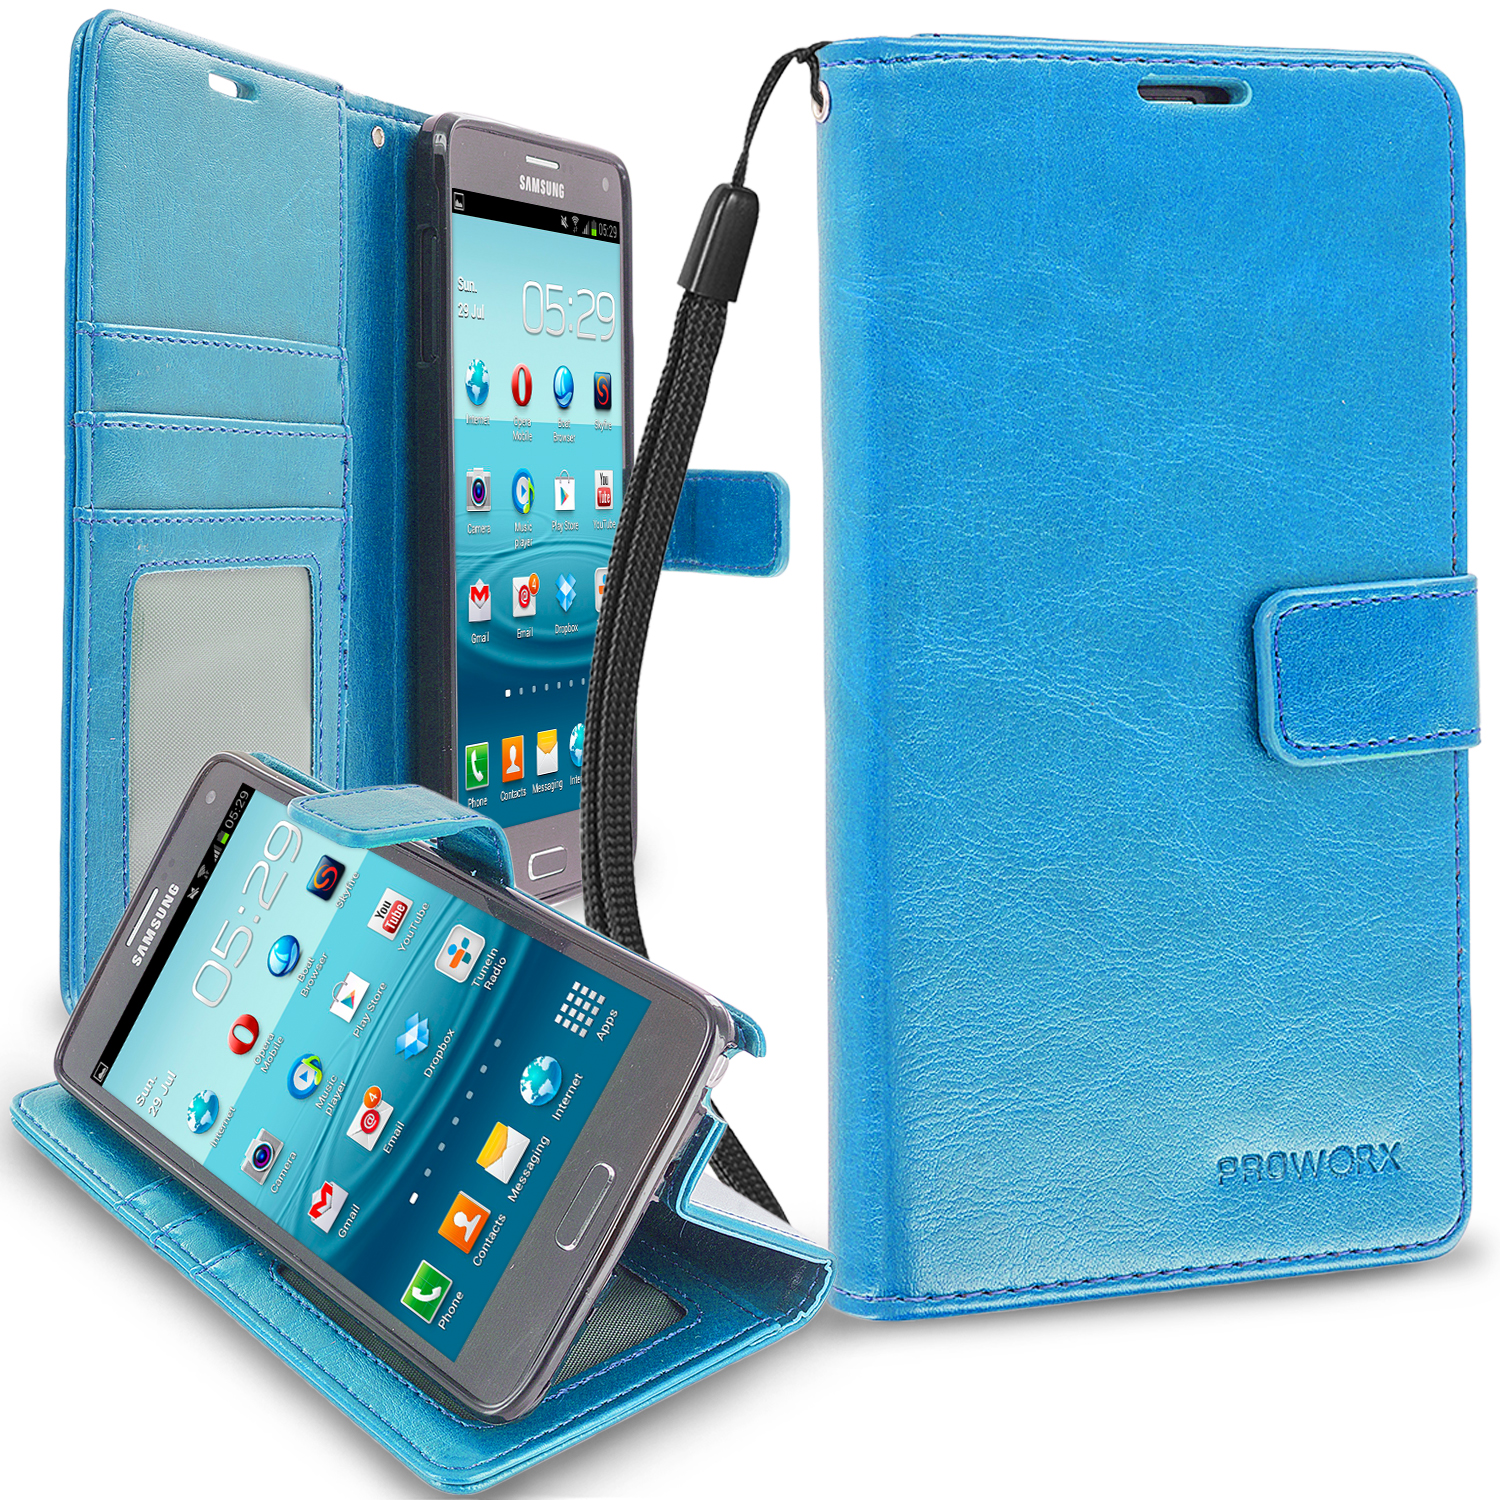 Samsung Galaxy Note 4 Baby Blue ProWorx Wallet Case Luxury PU Leather Case Cover With Card Slots & Stand